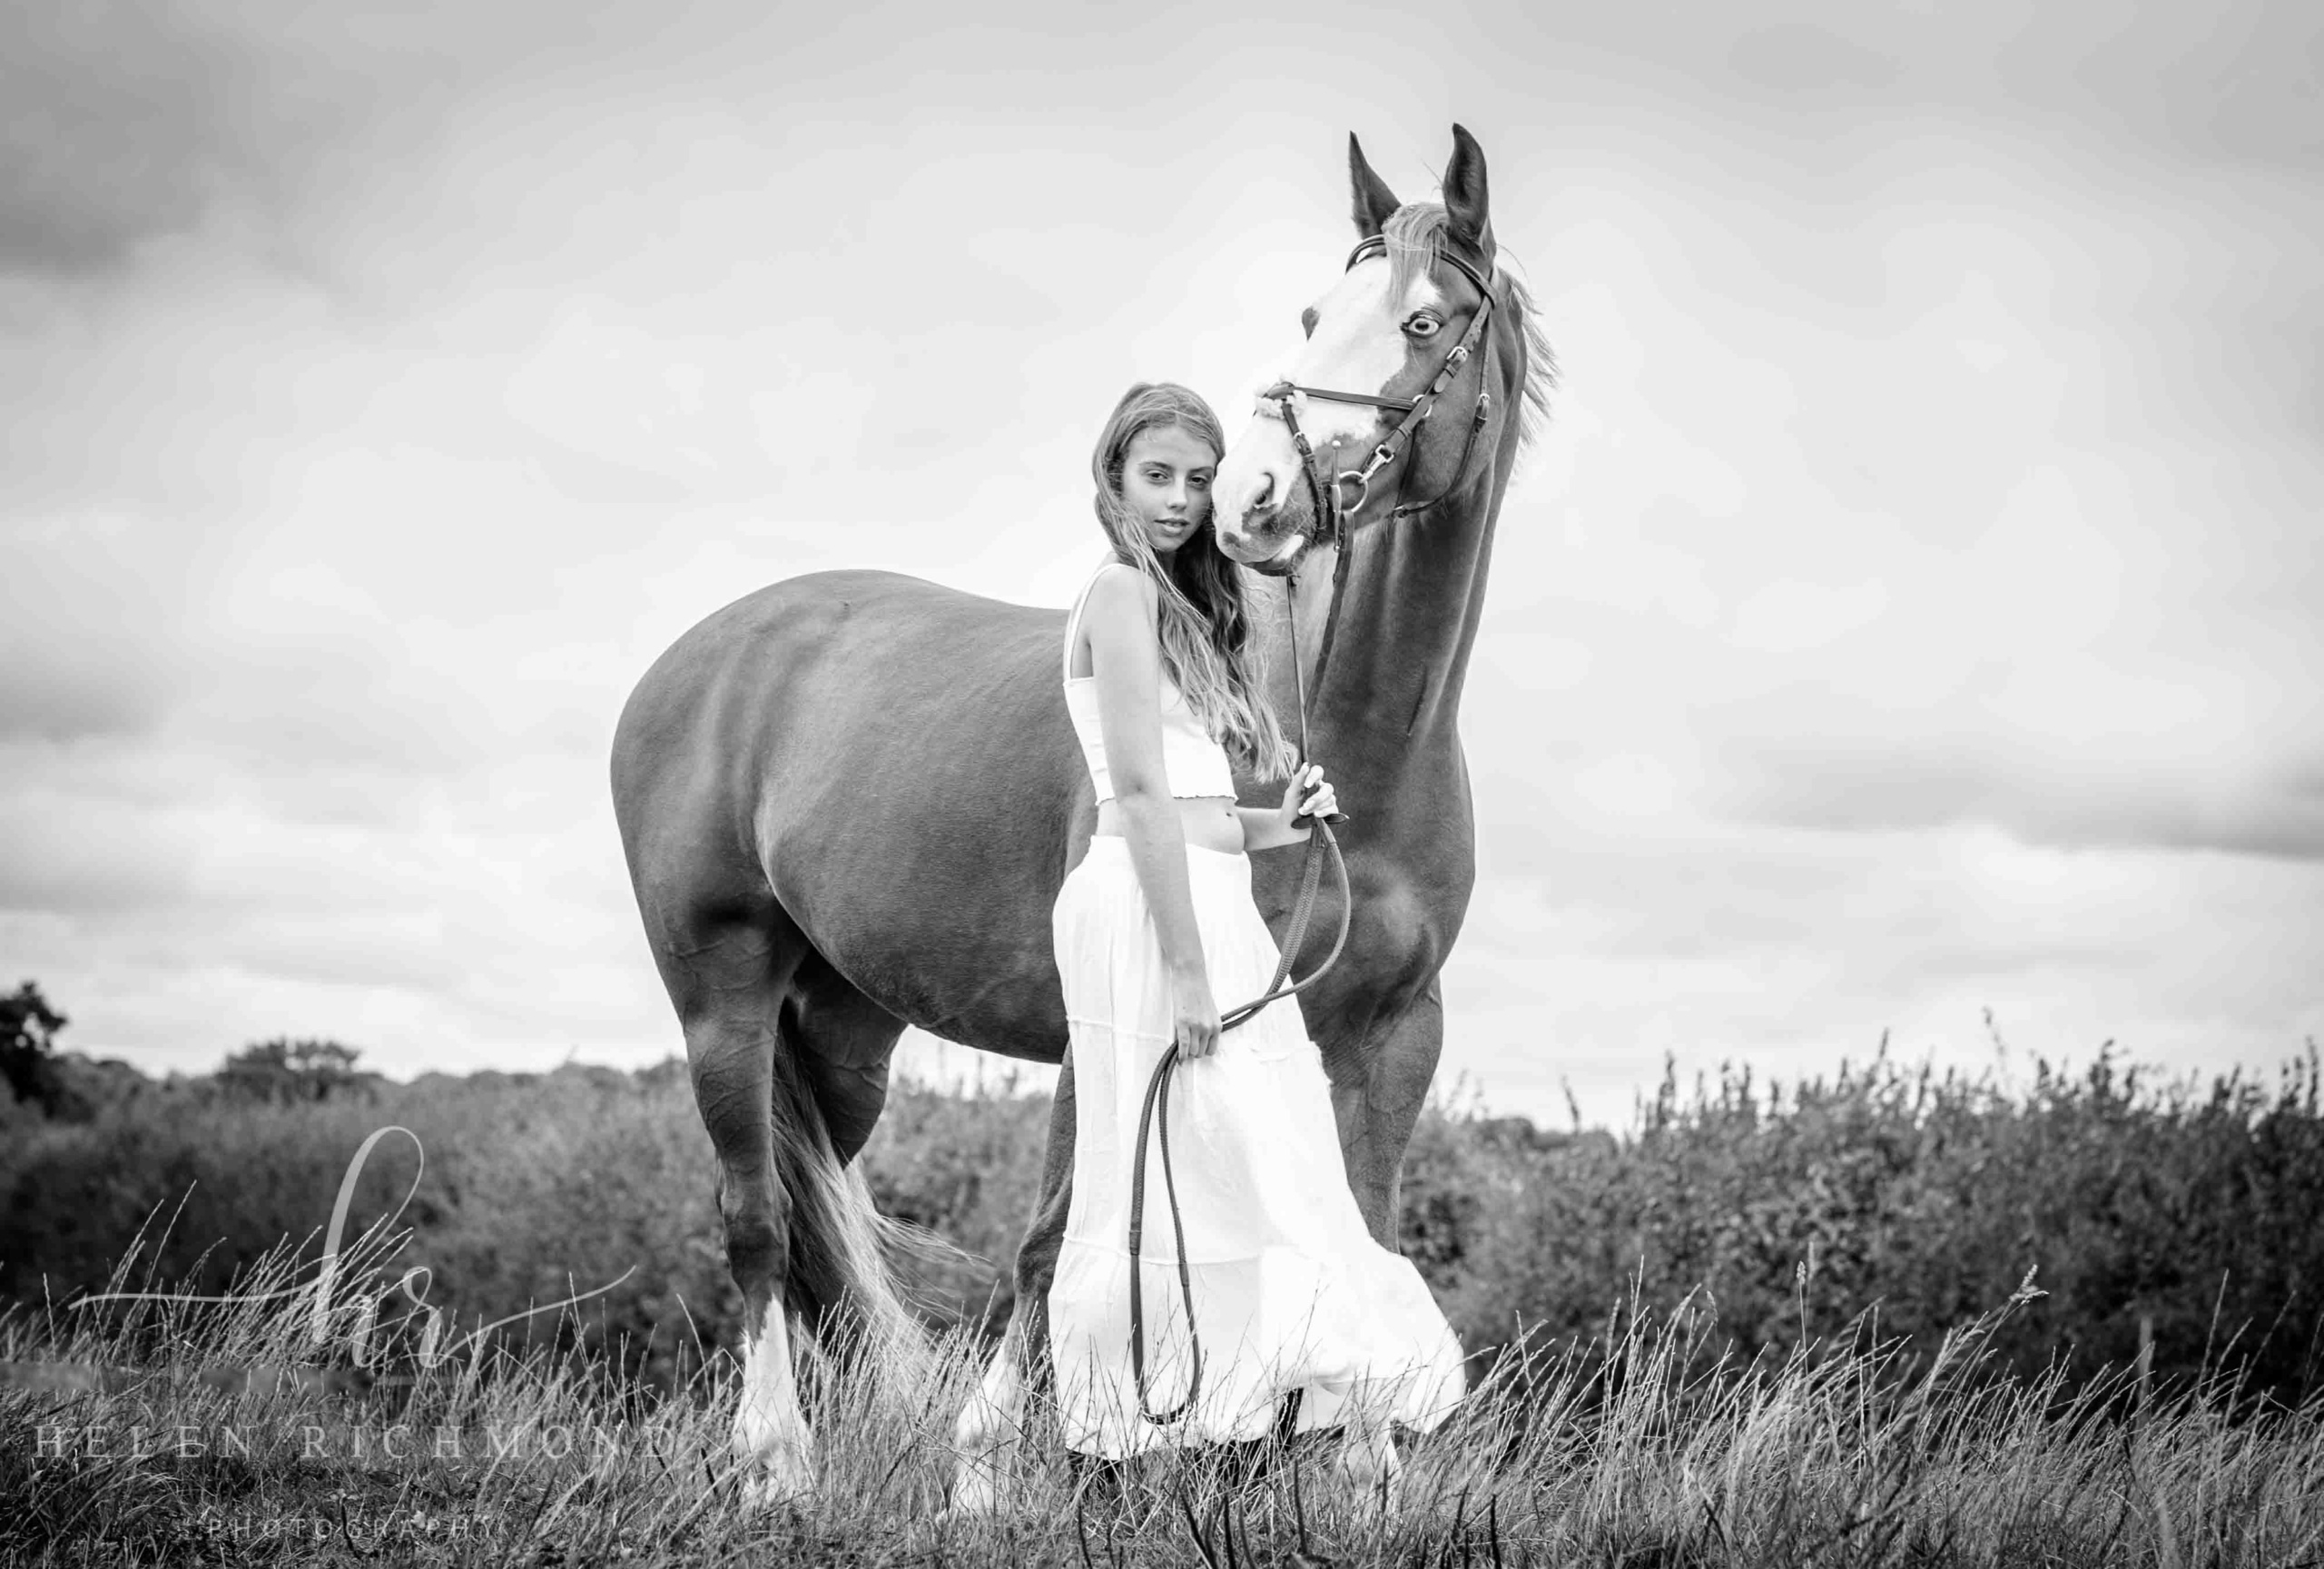 Horse Photography By Helen Richmond Capturing That Special Moment